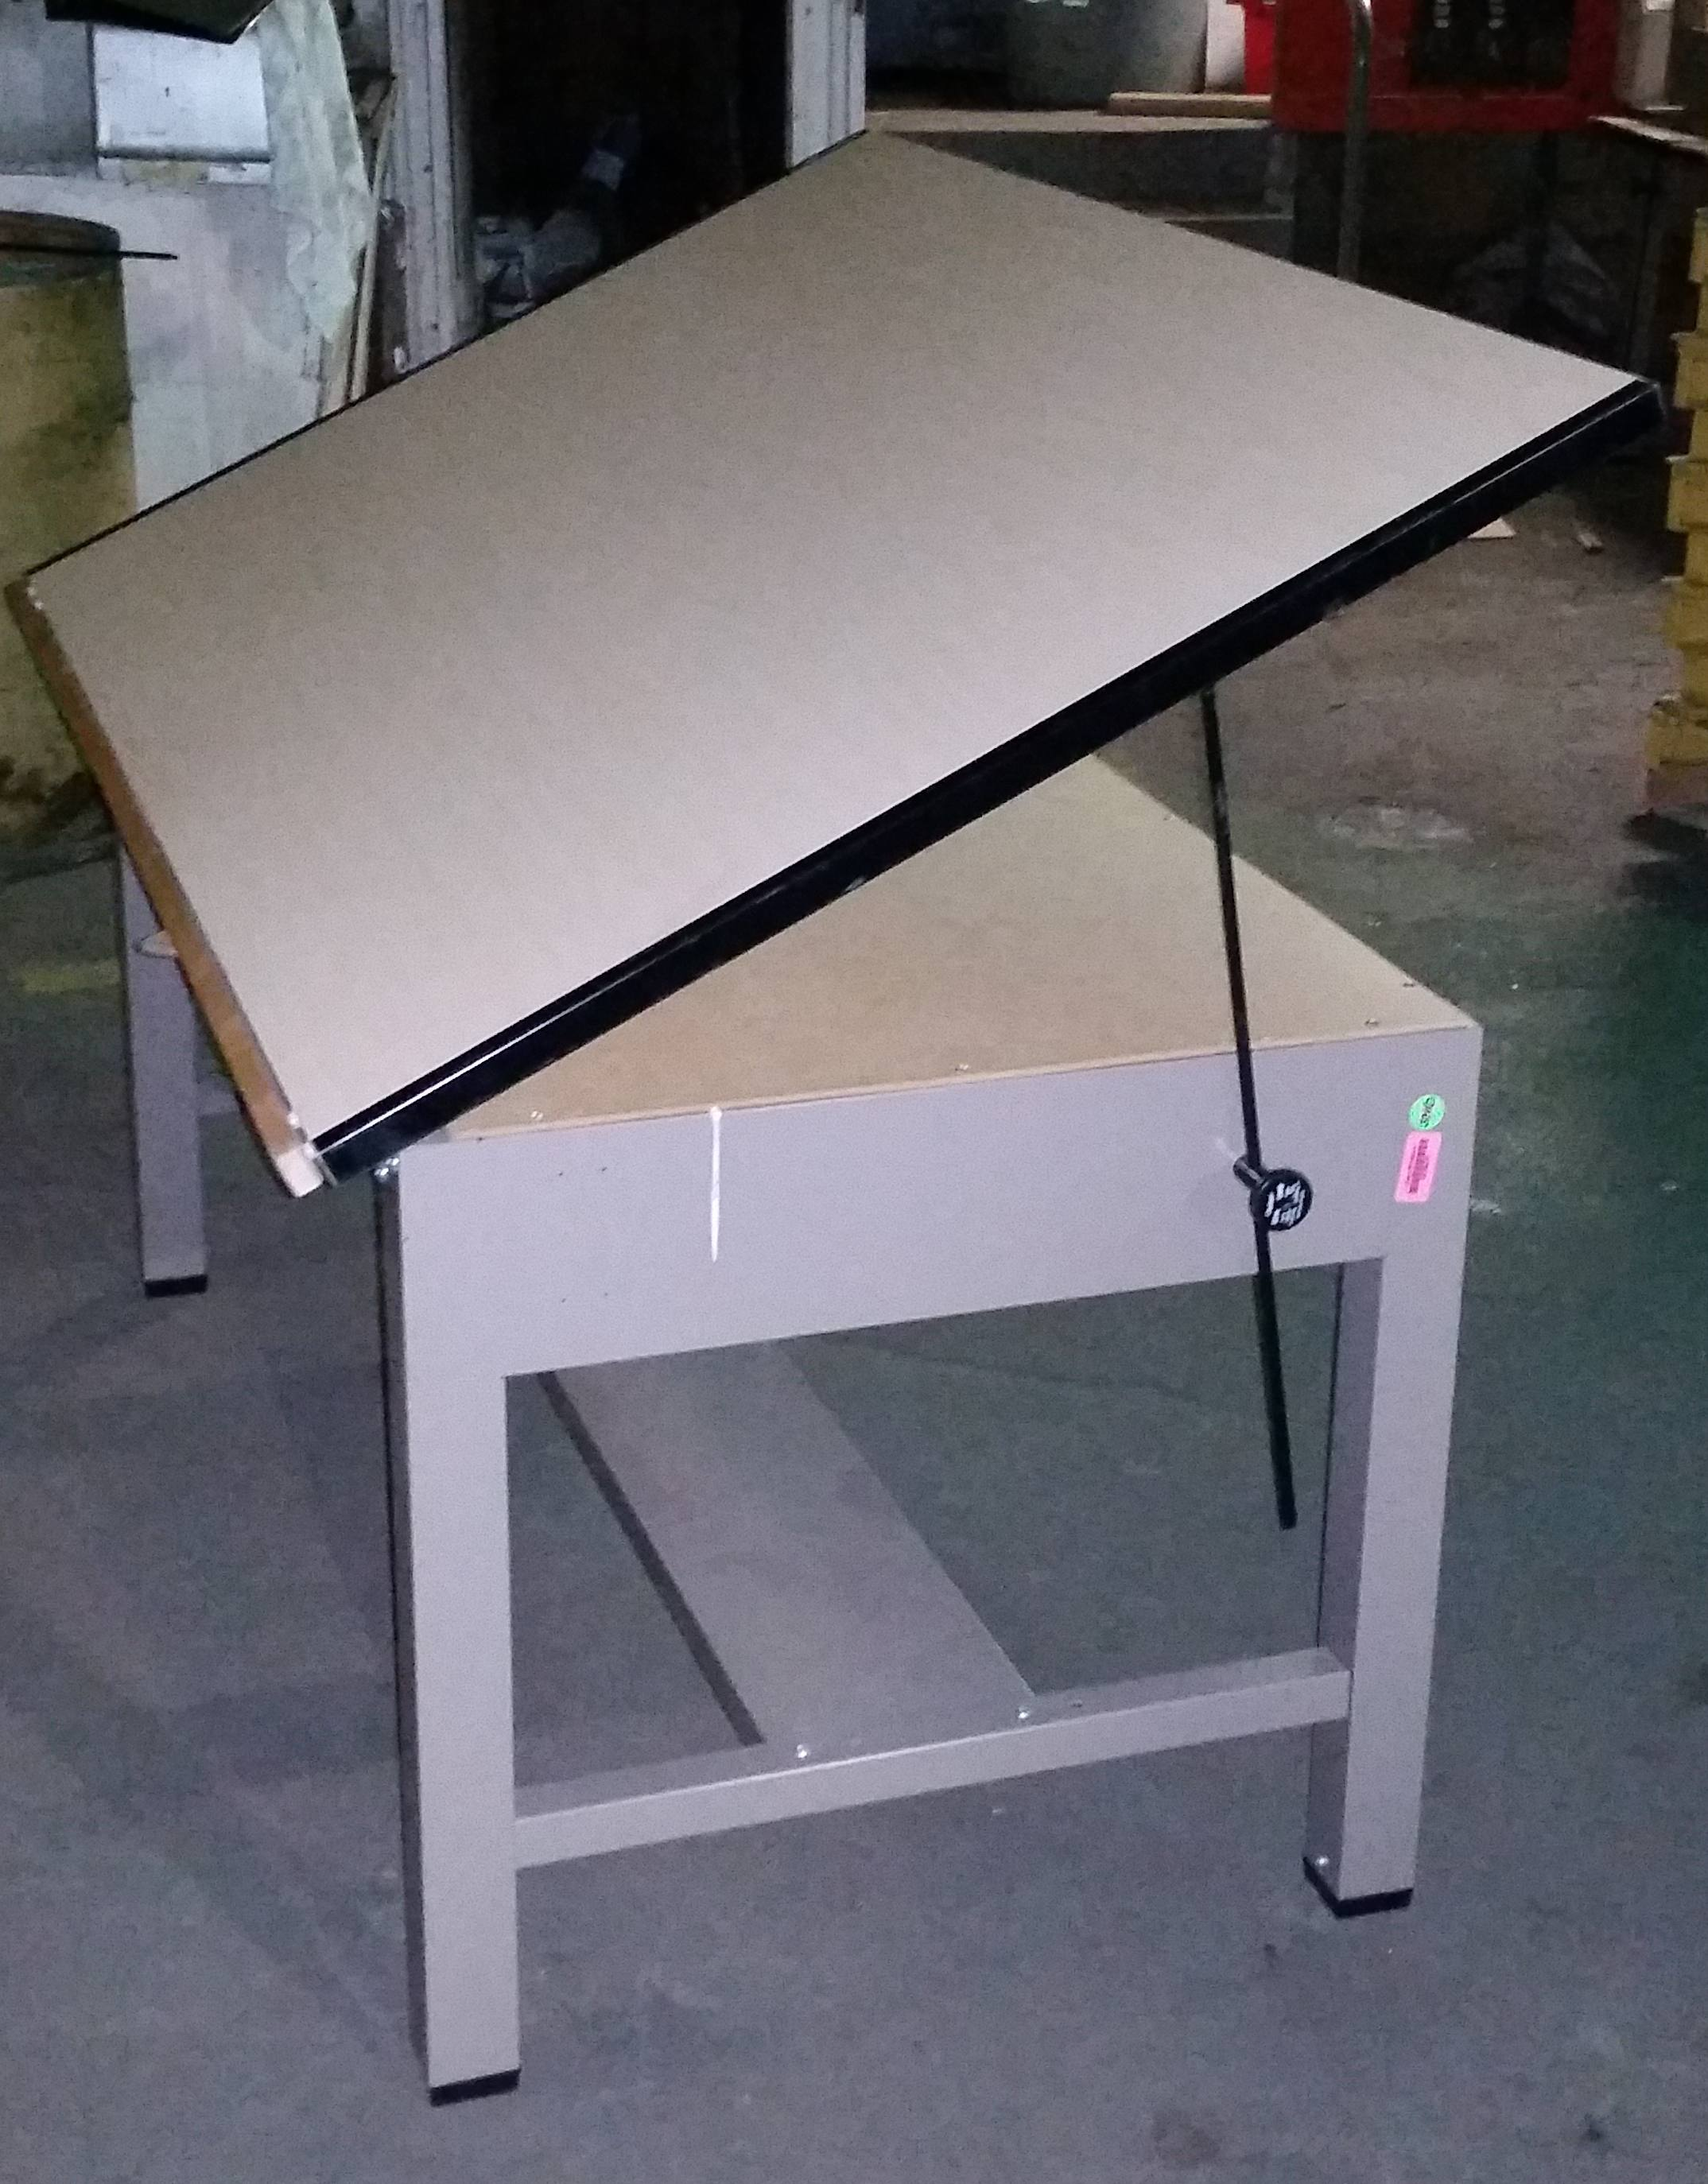 3'x5' maple laminate drafting table - used - welter storage